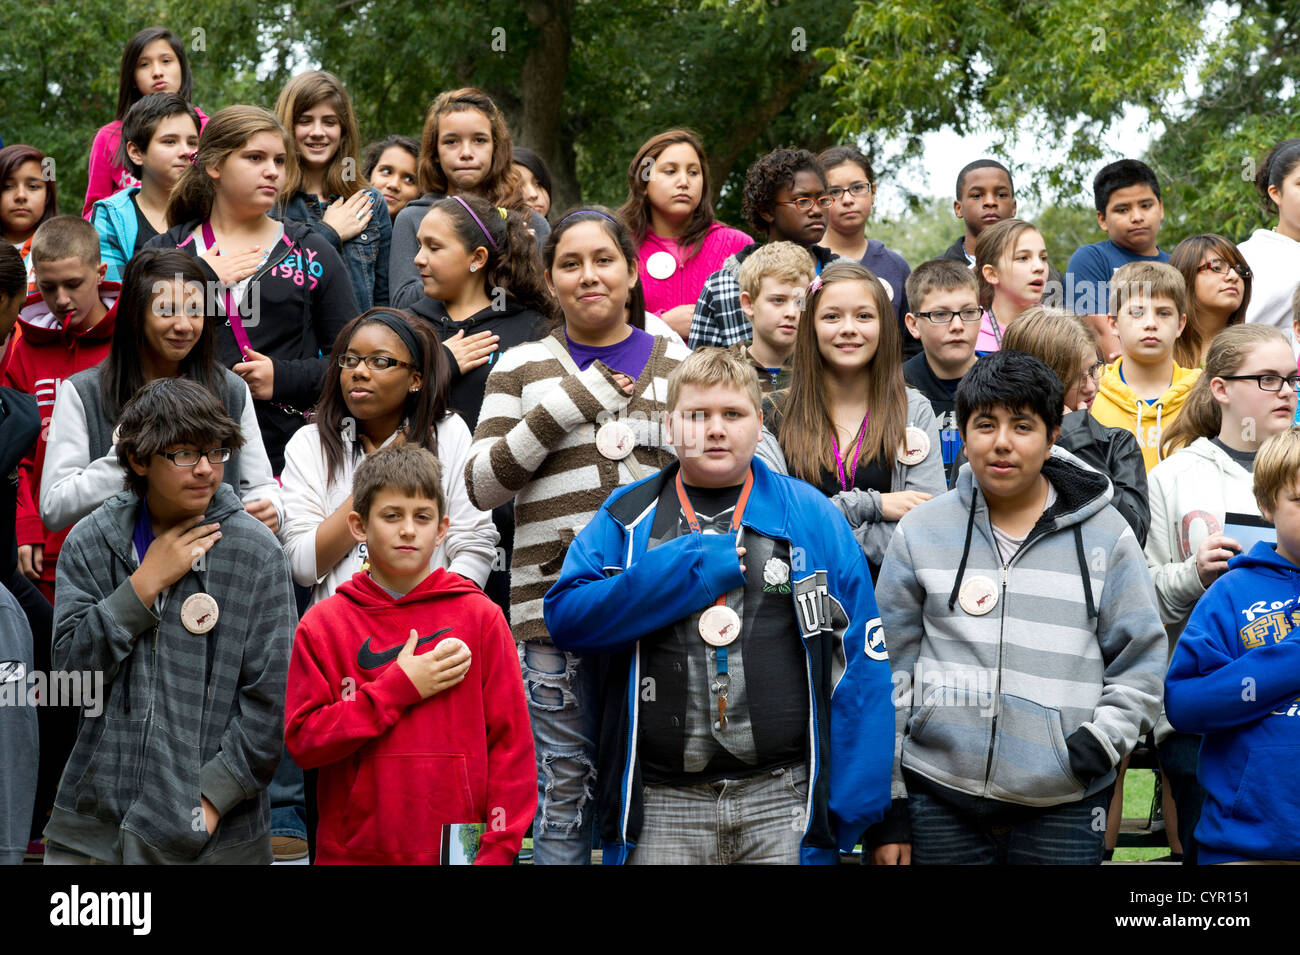 Multicultural group of Texas junior high school students recite Pledge of Allegiance during field trip to rural - Stock Image